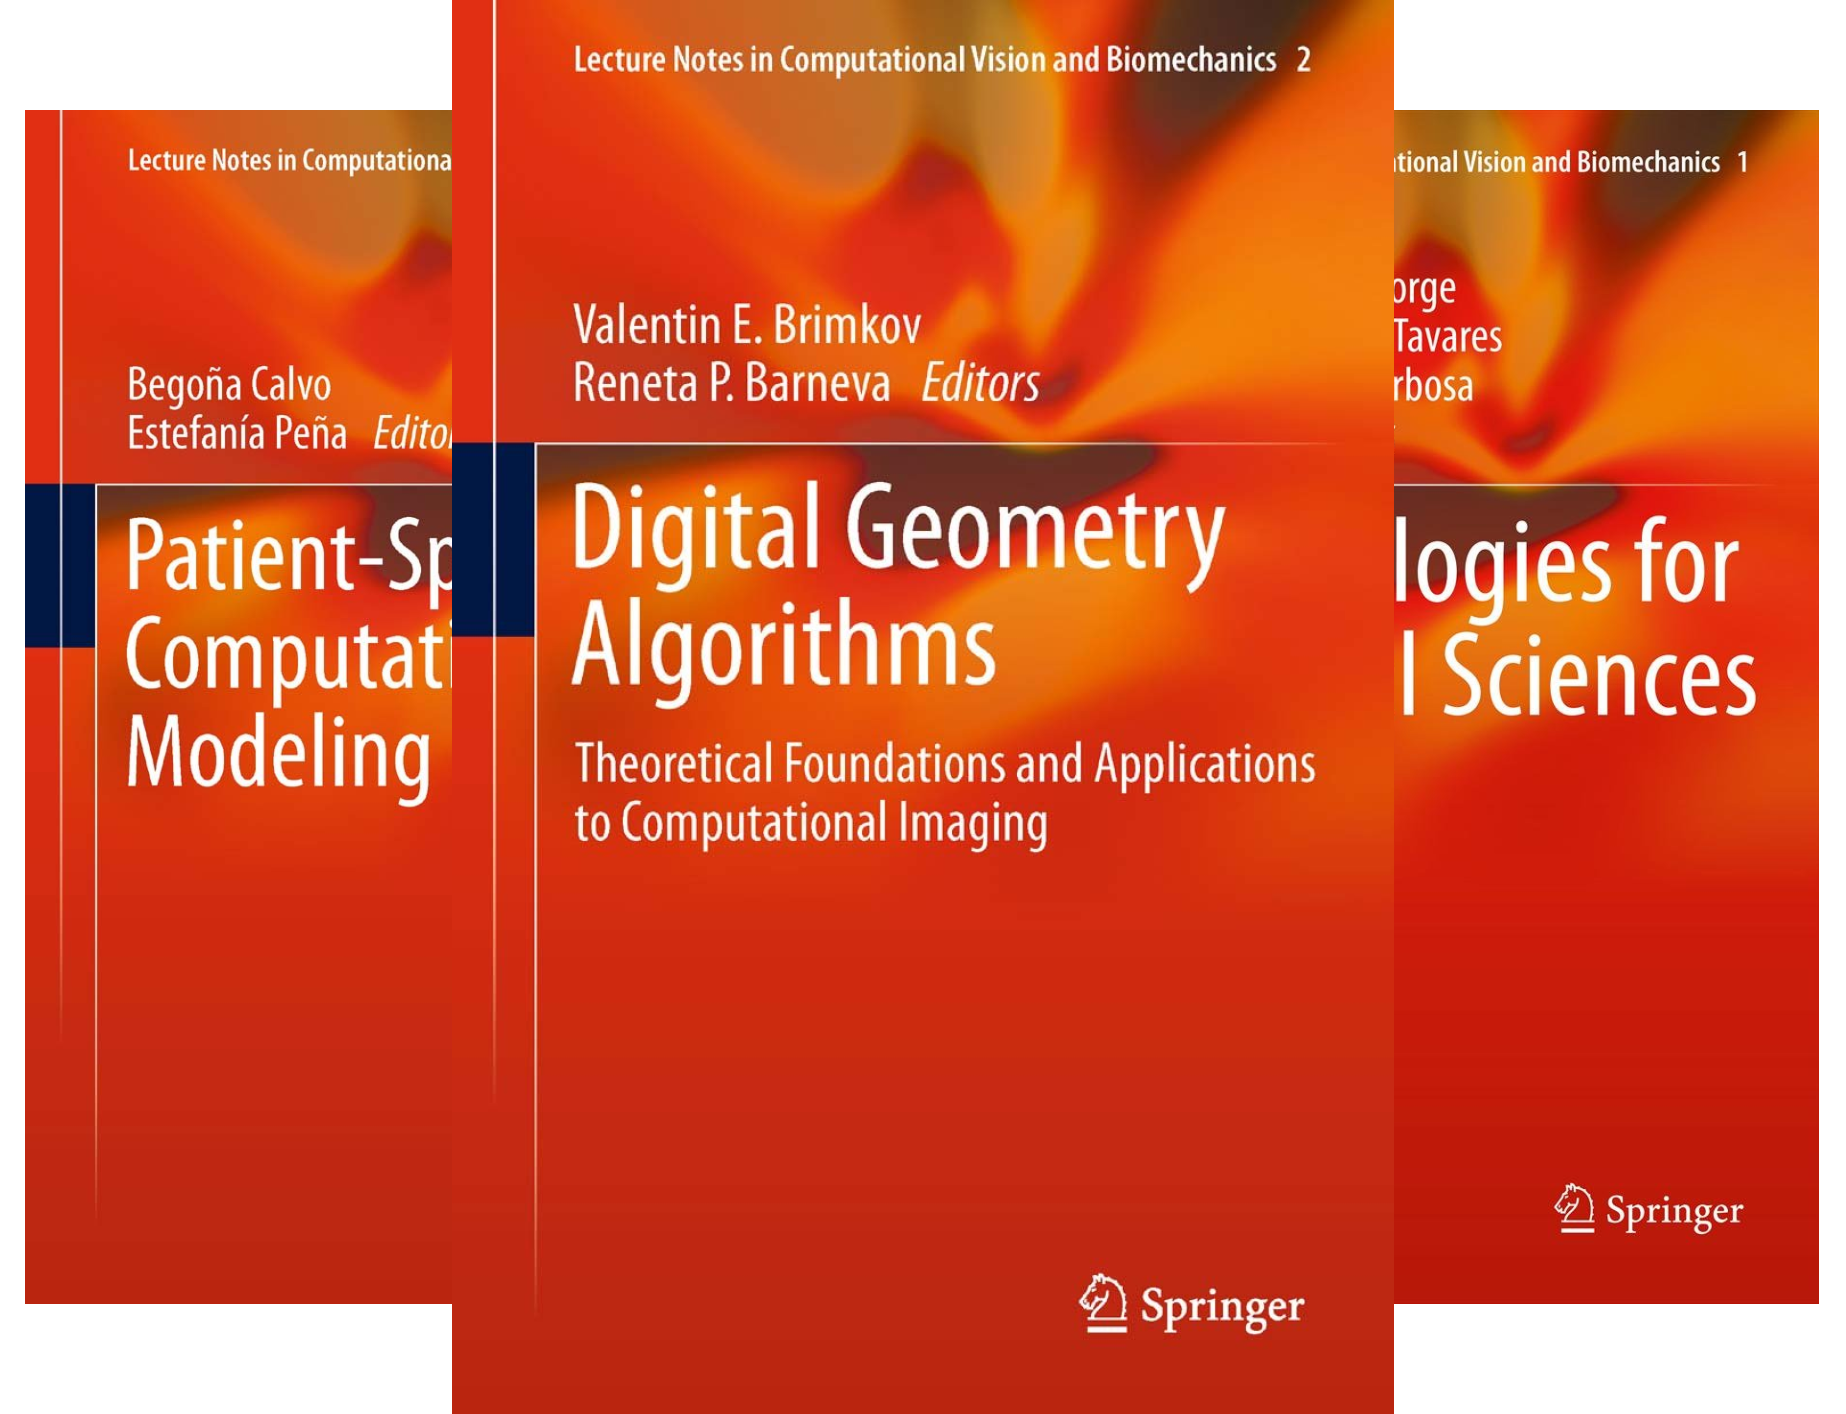 Lecture Notes in Computational Vision and Biomechanics (34 Book Series)